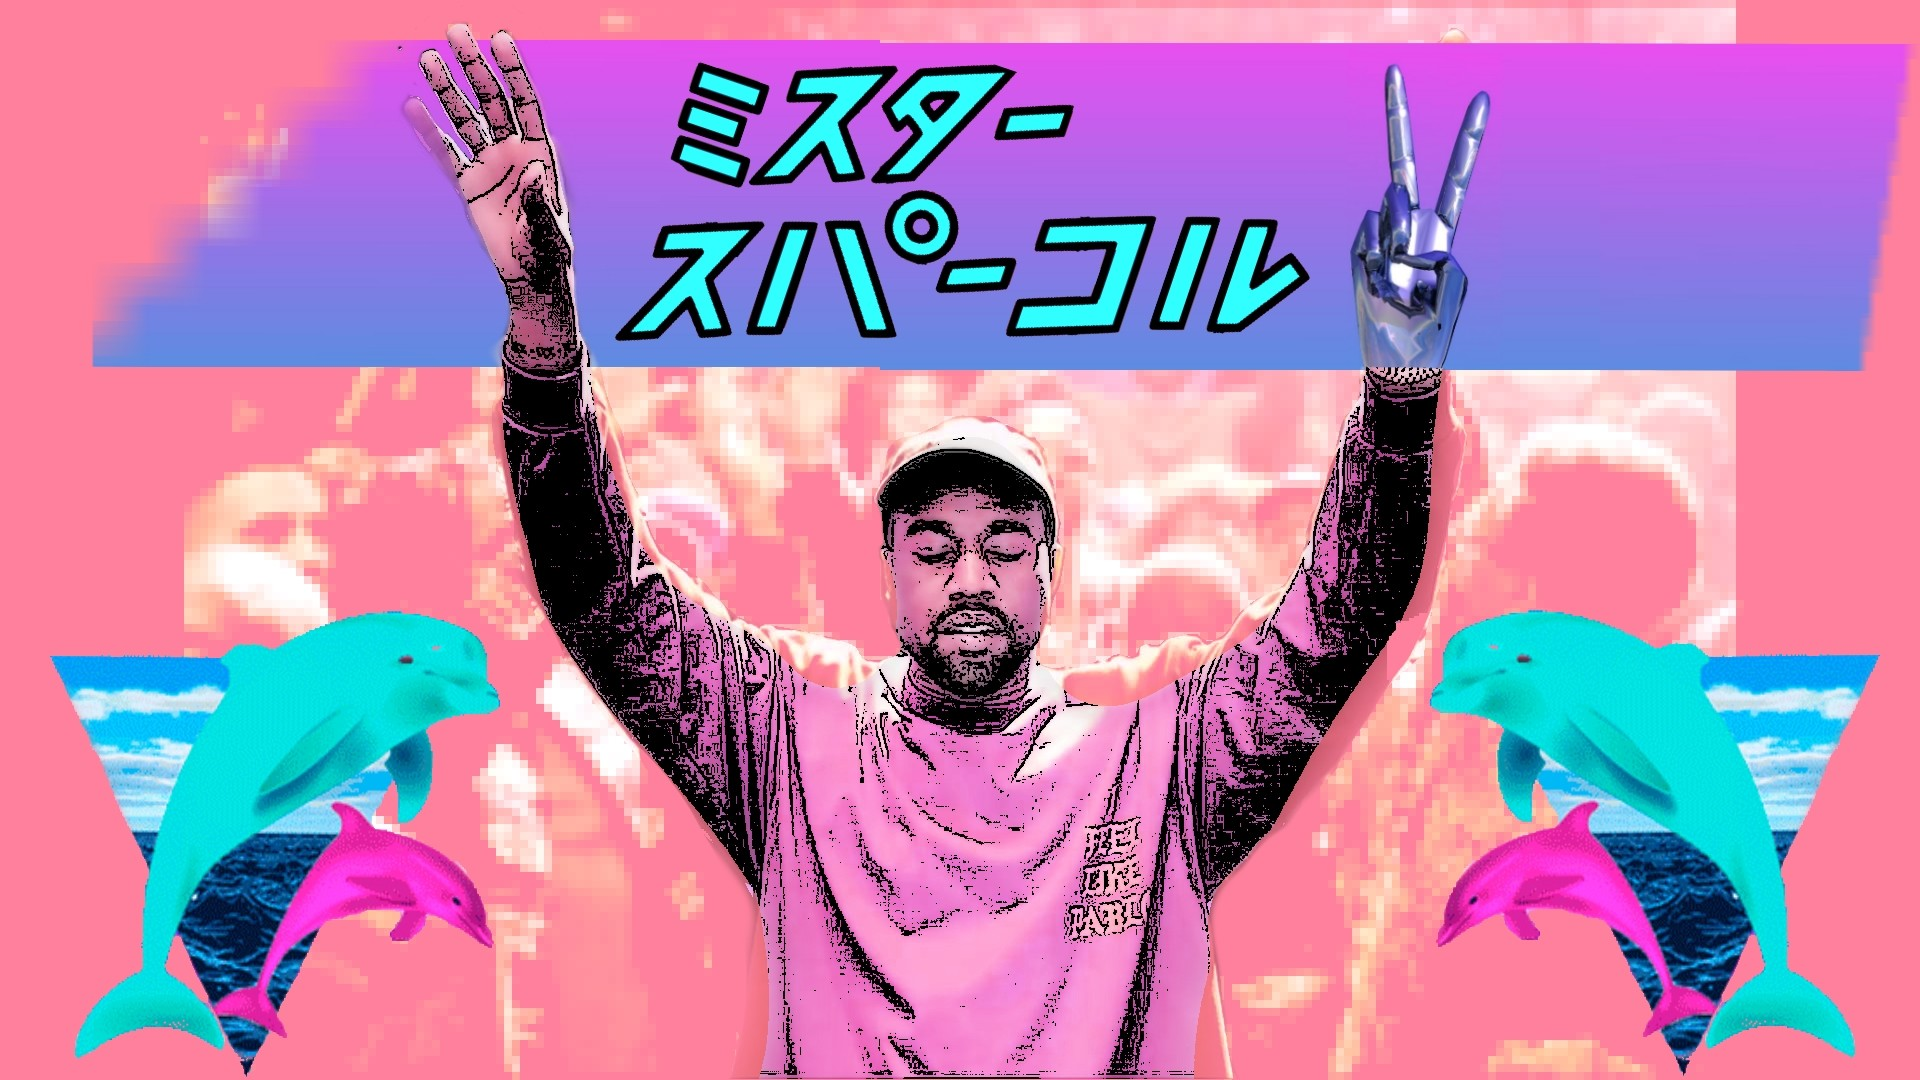 1920x1080 Vaporwave wallpaper